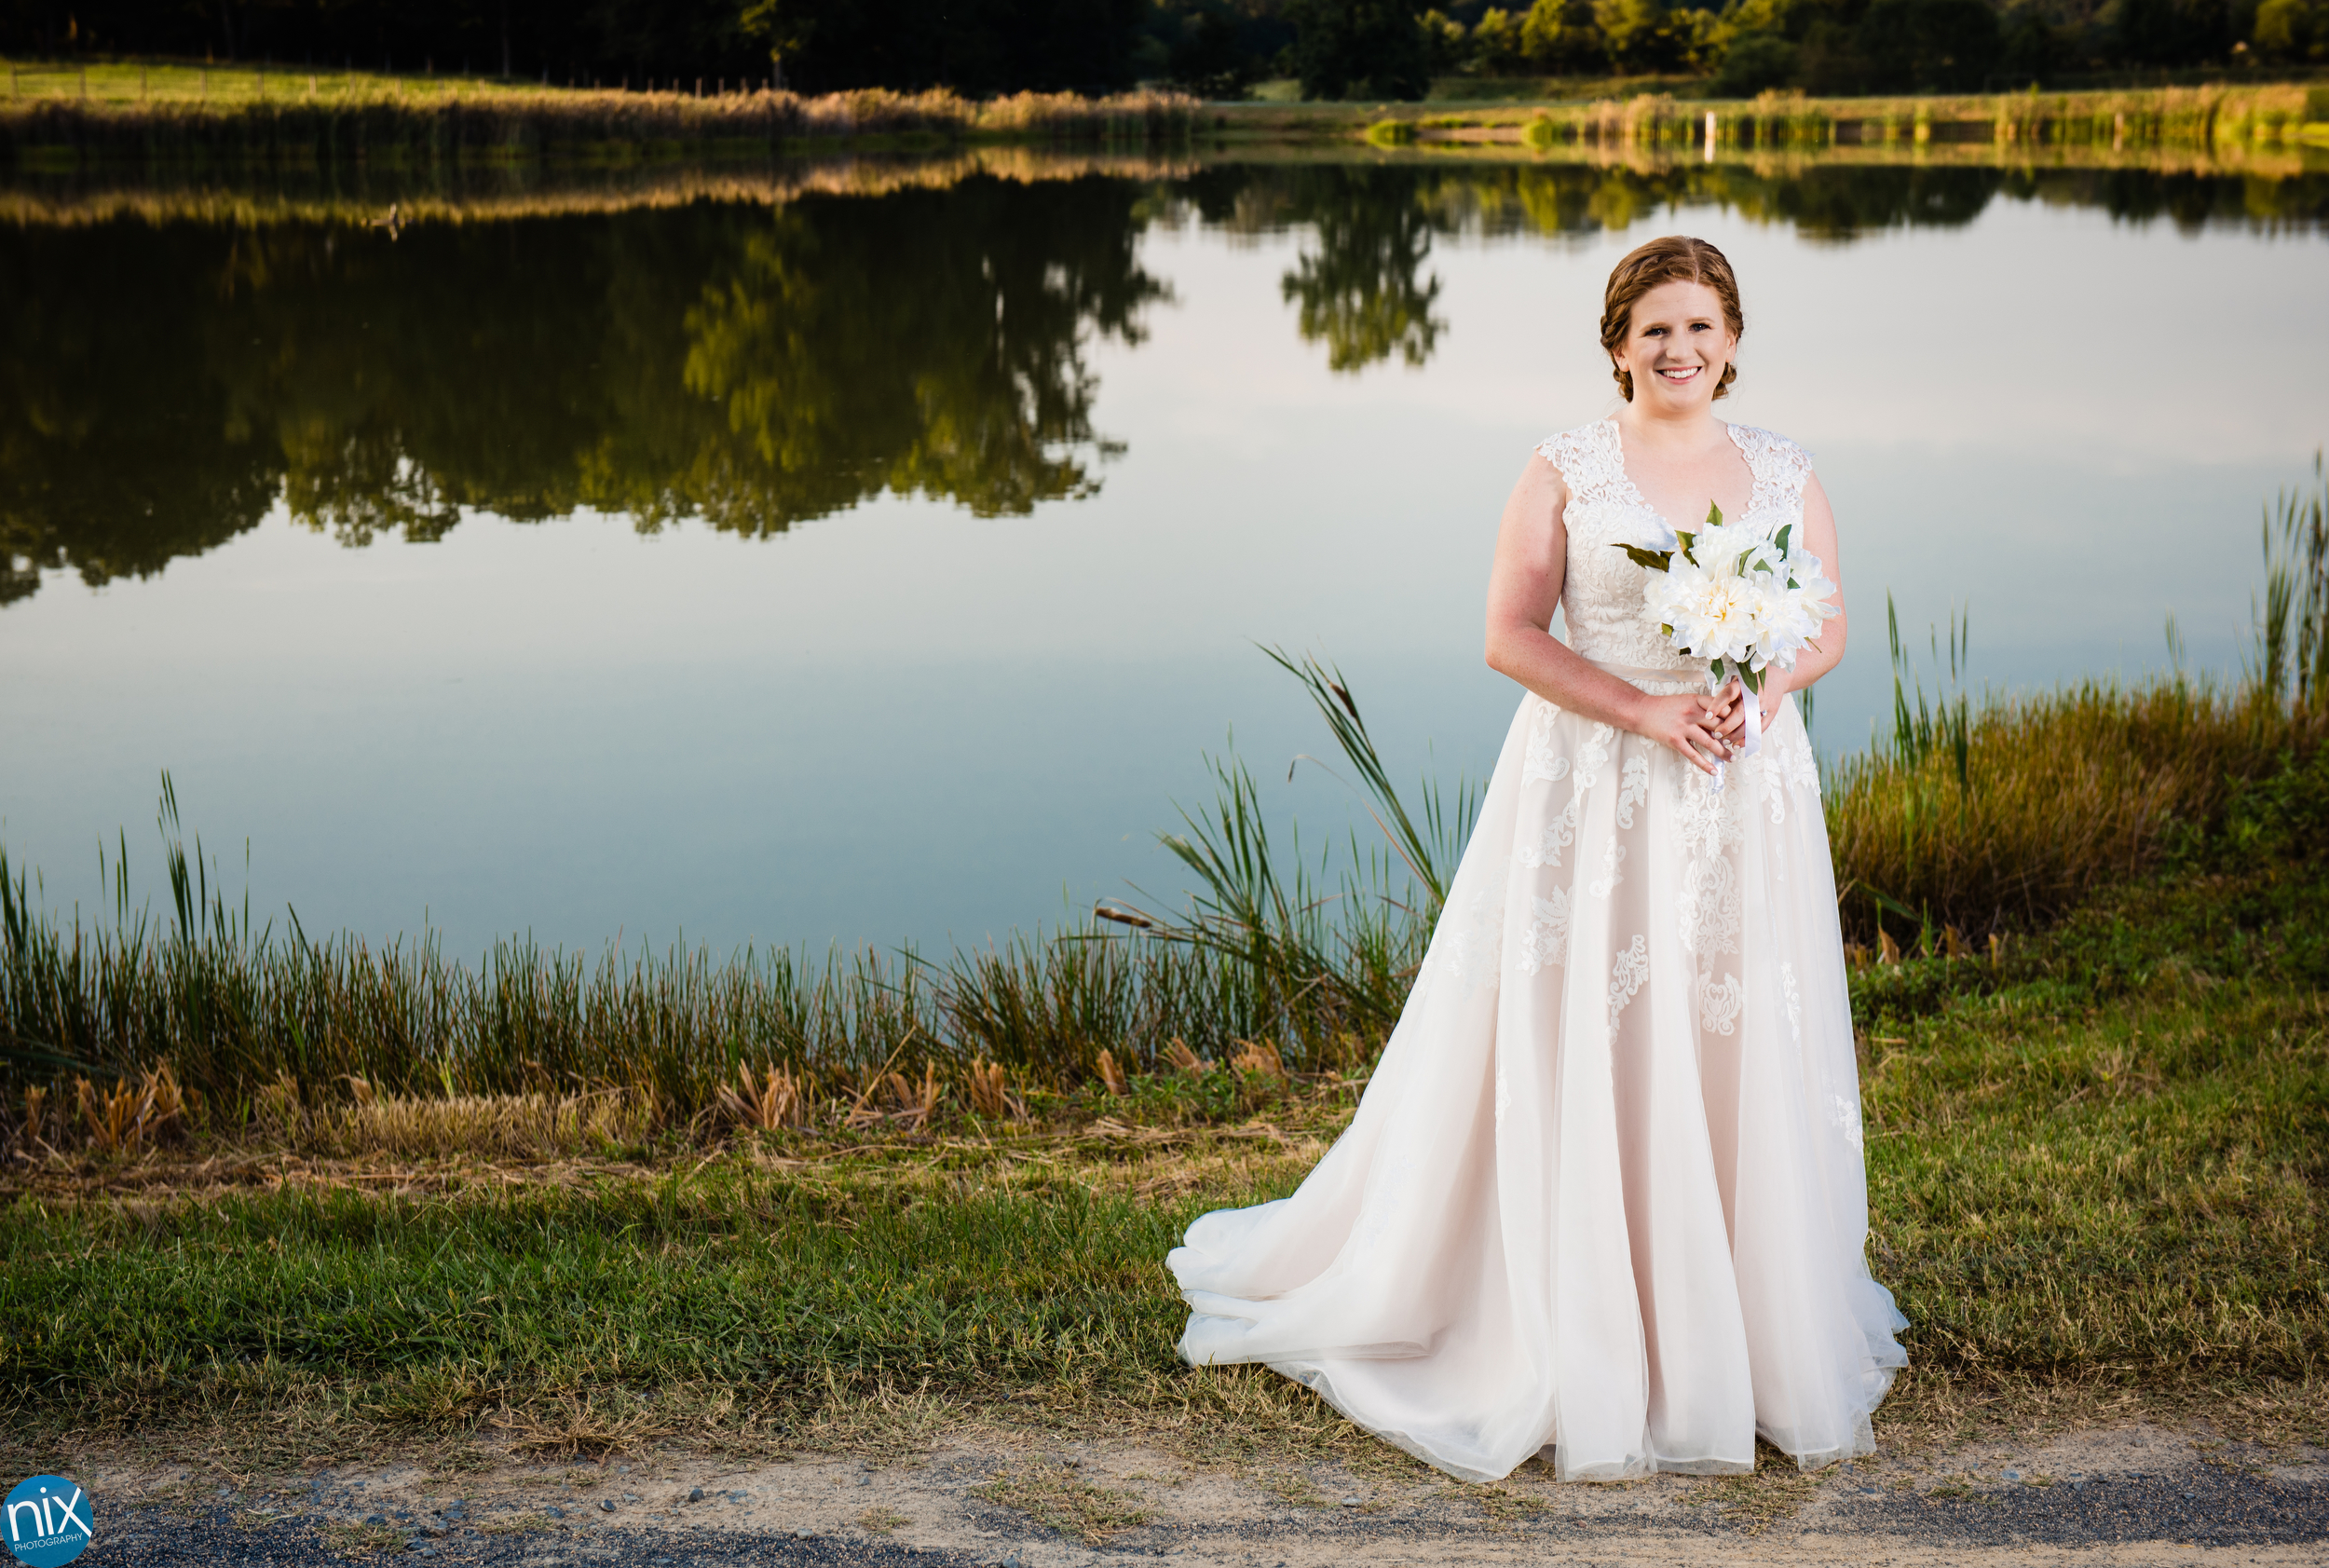 bride in wedding dress in front of a pond.jpg